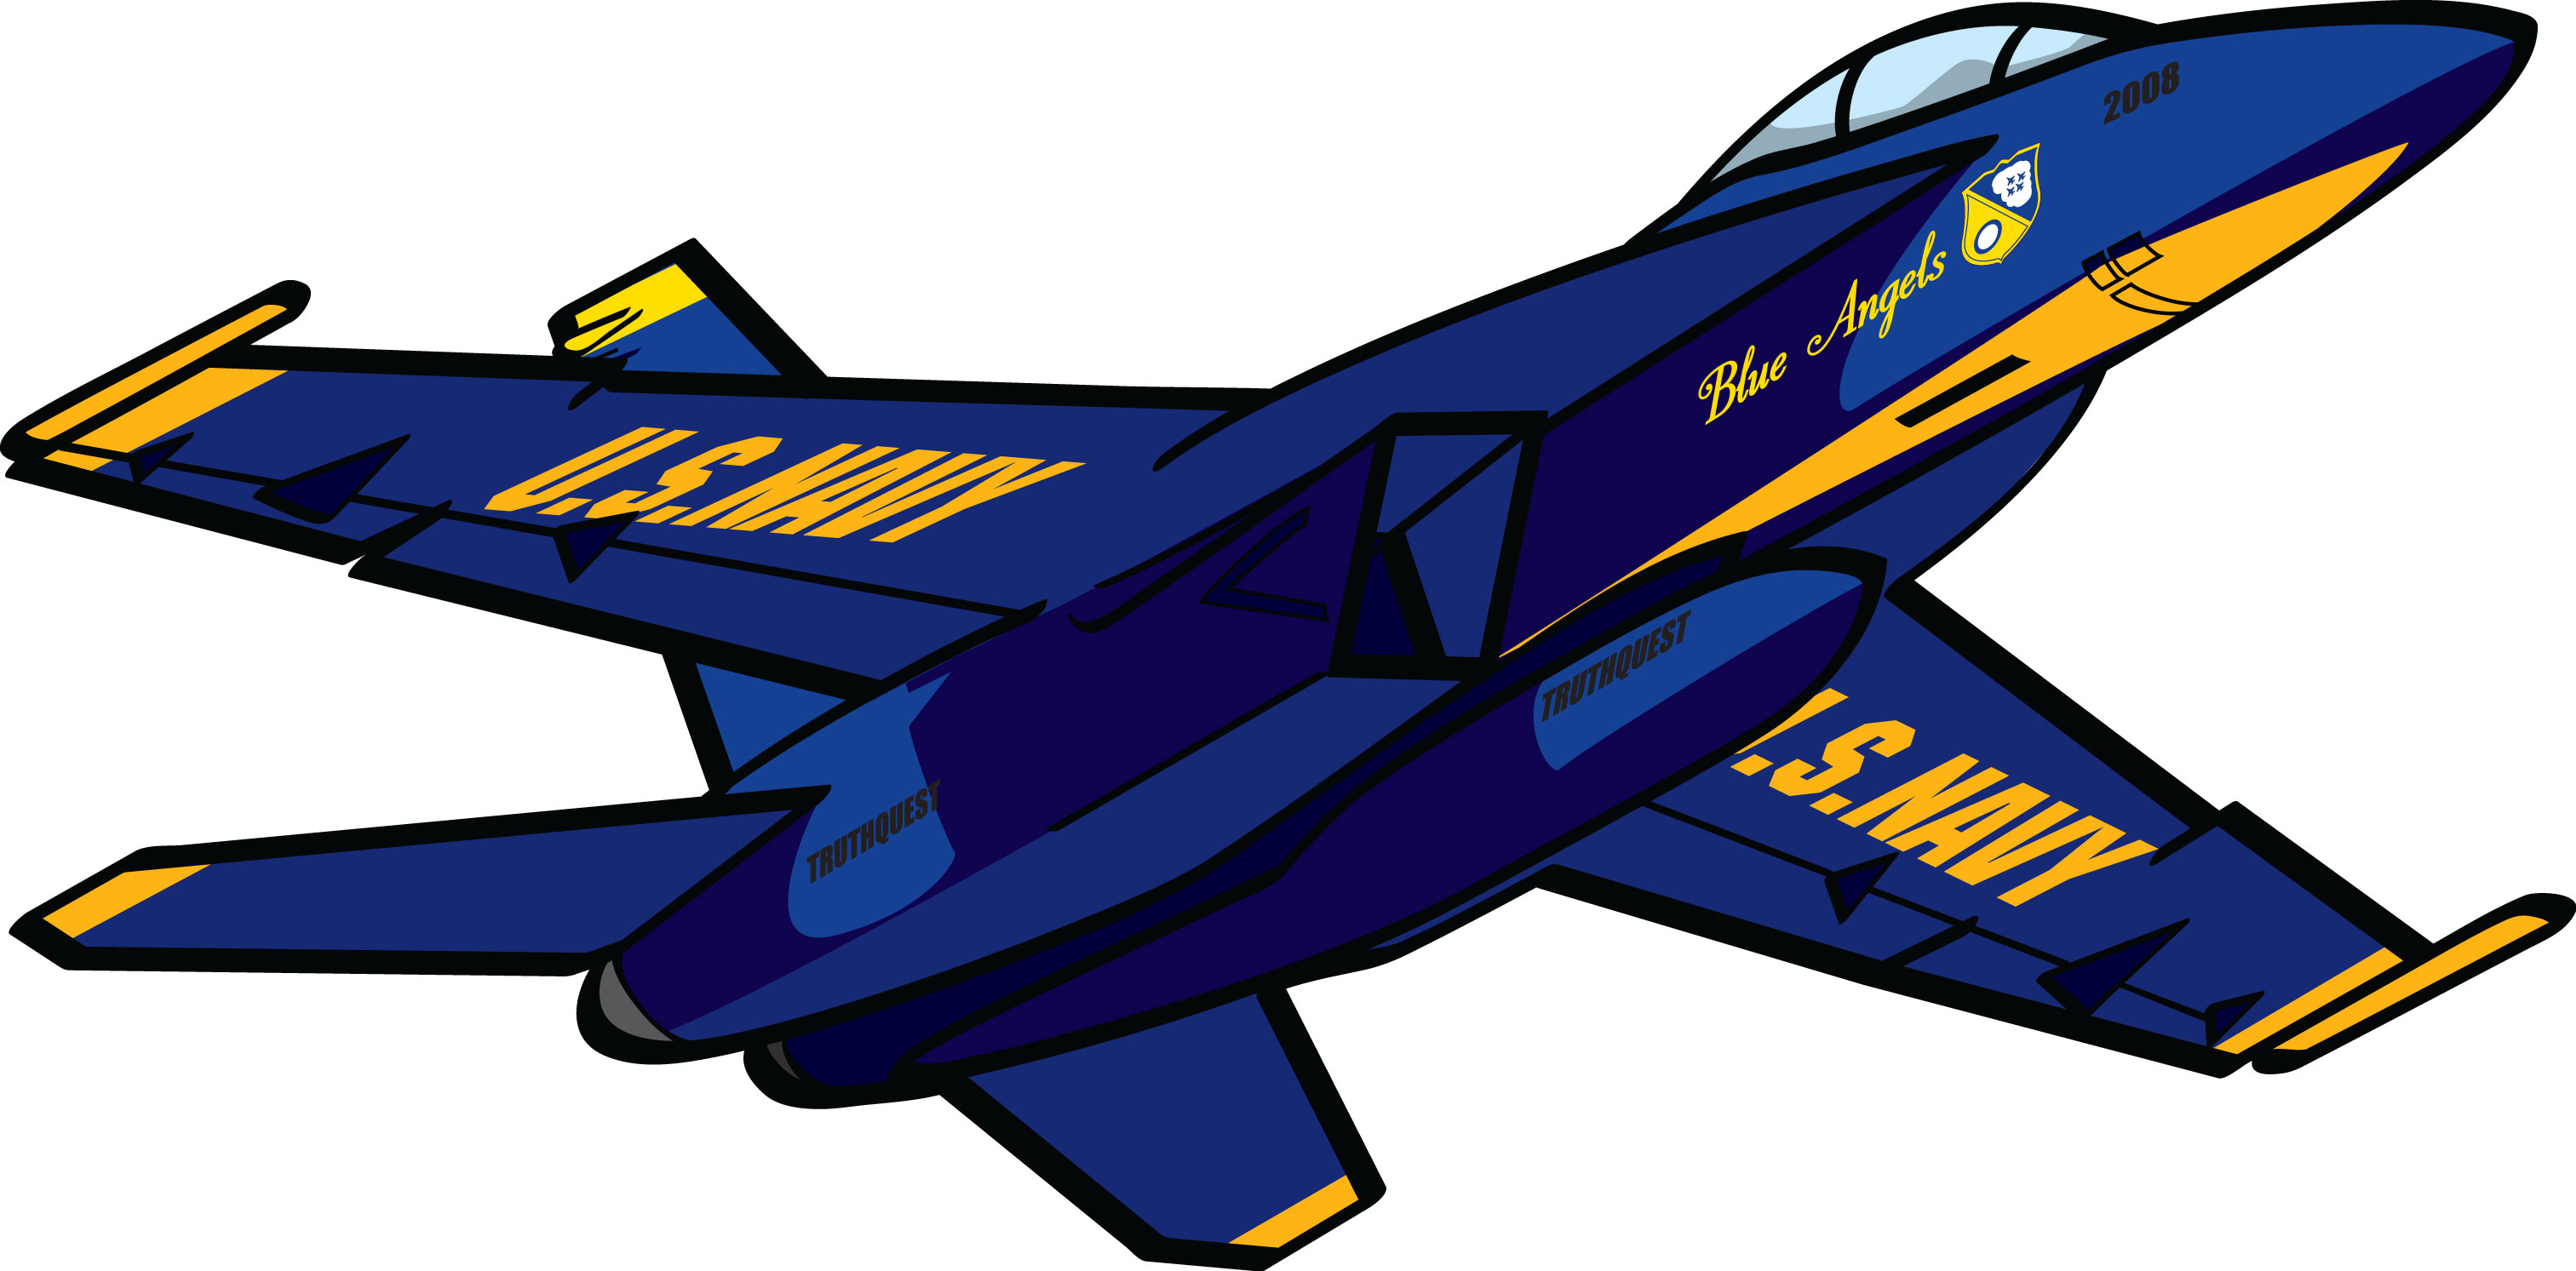 Jet clipart blue angel Inspiration and Jet Clipart Jet